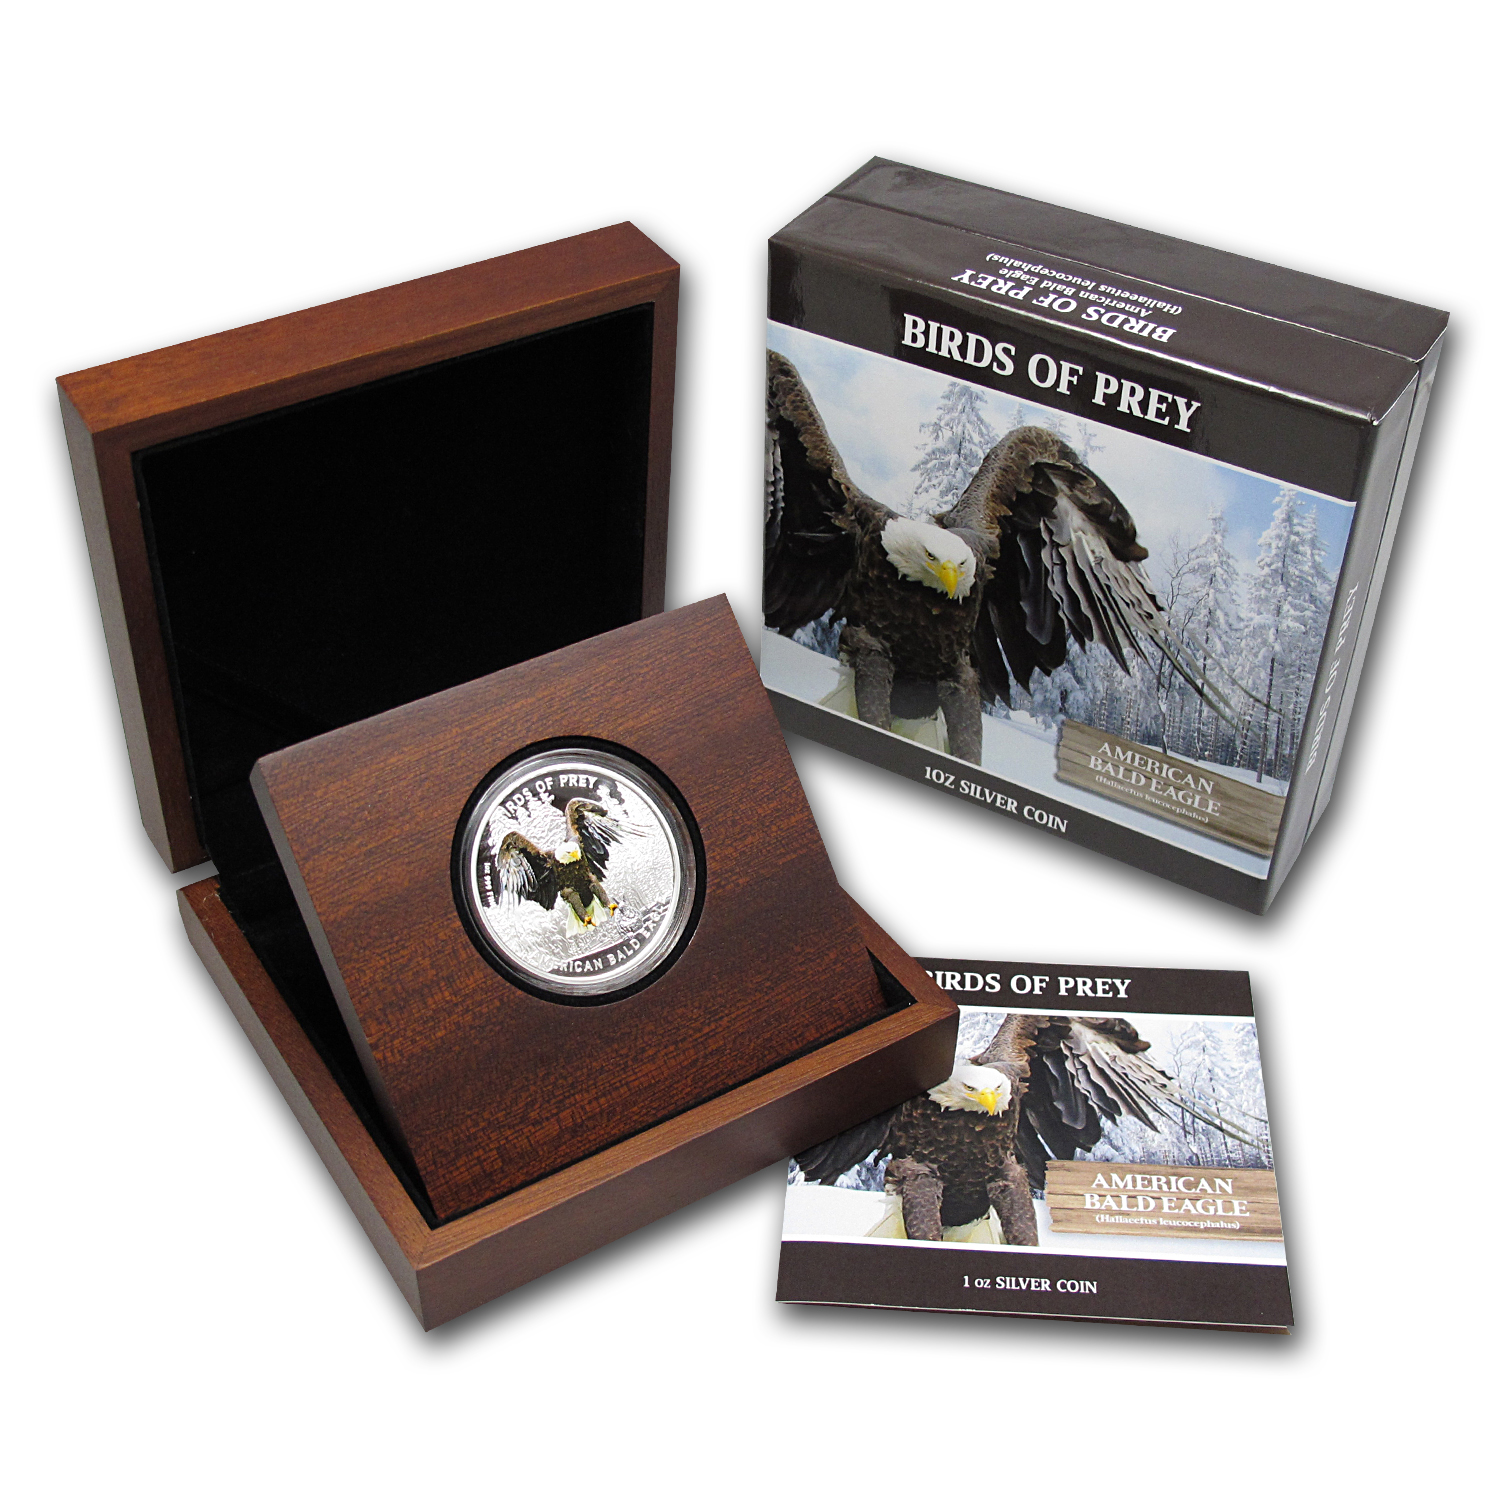 2013 Niue 1 oz Silver $2 American Bald Eagle Proof